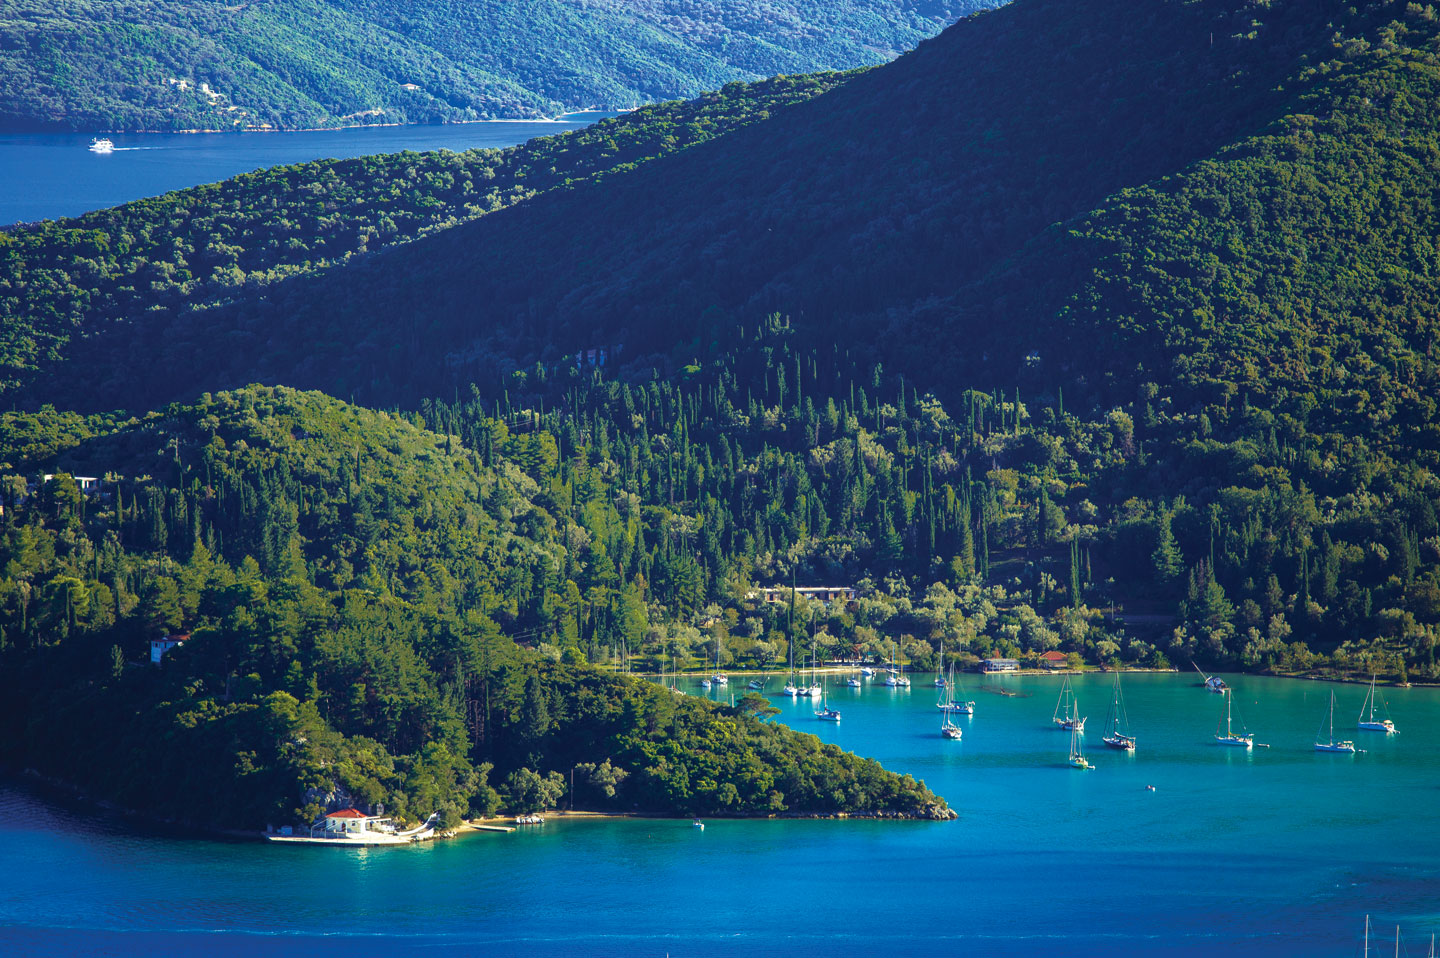 A beautiful natural harbour in Lefkada, Greece